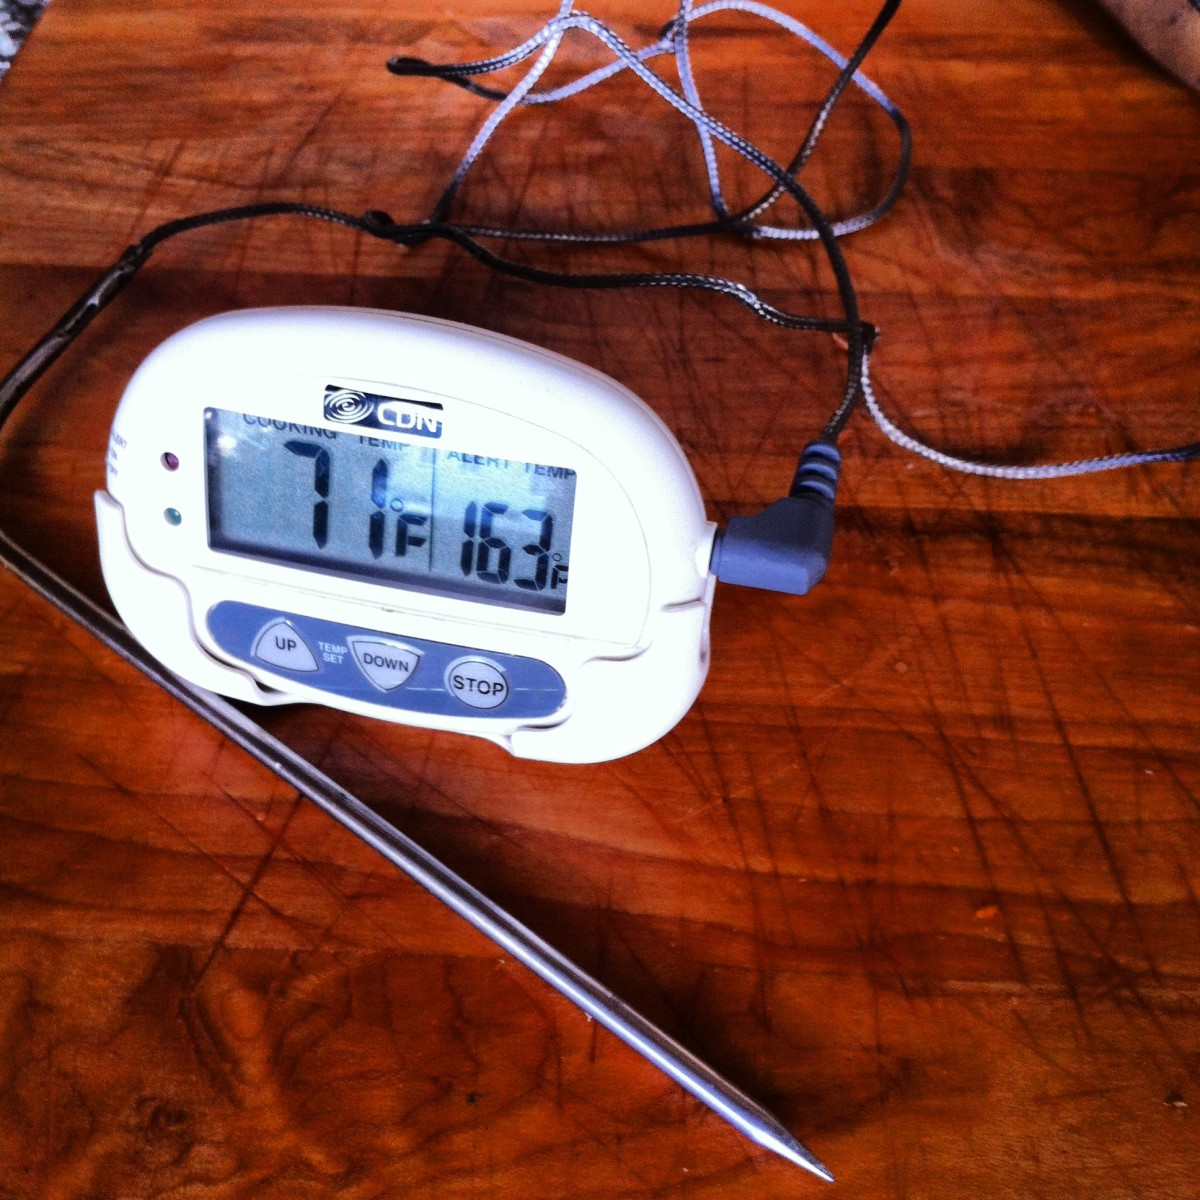 Using a probe-style thermometer removes the guesswork from doneness. You get it perfect every time.